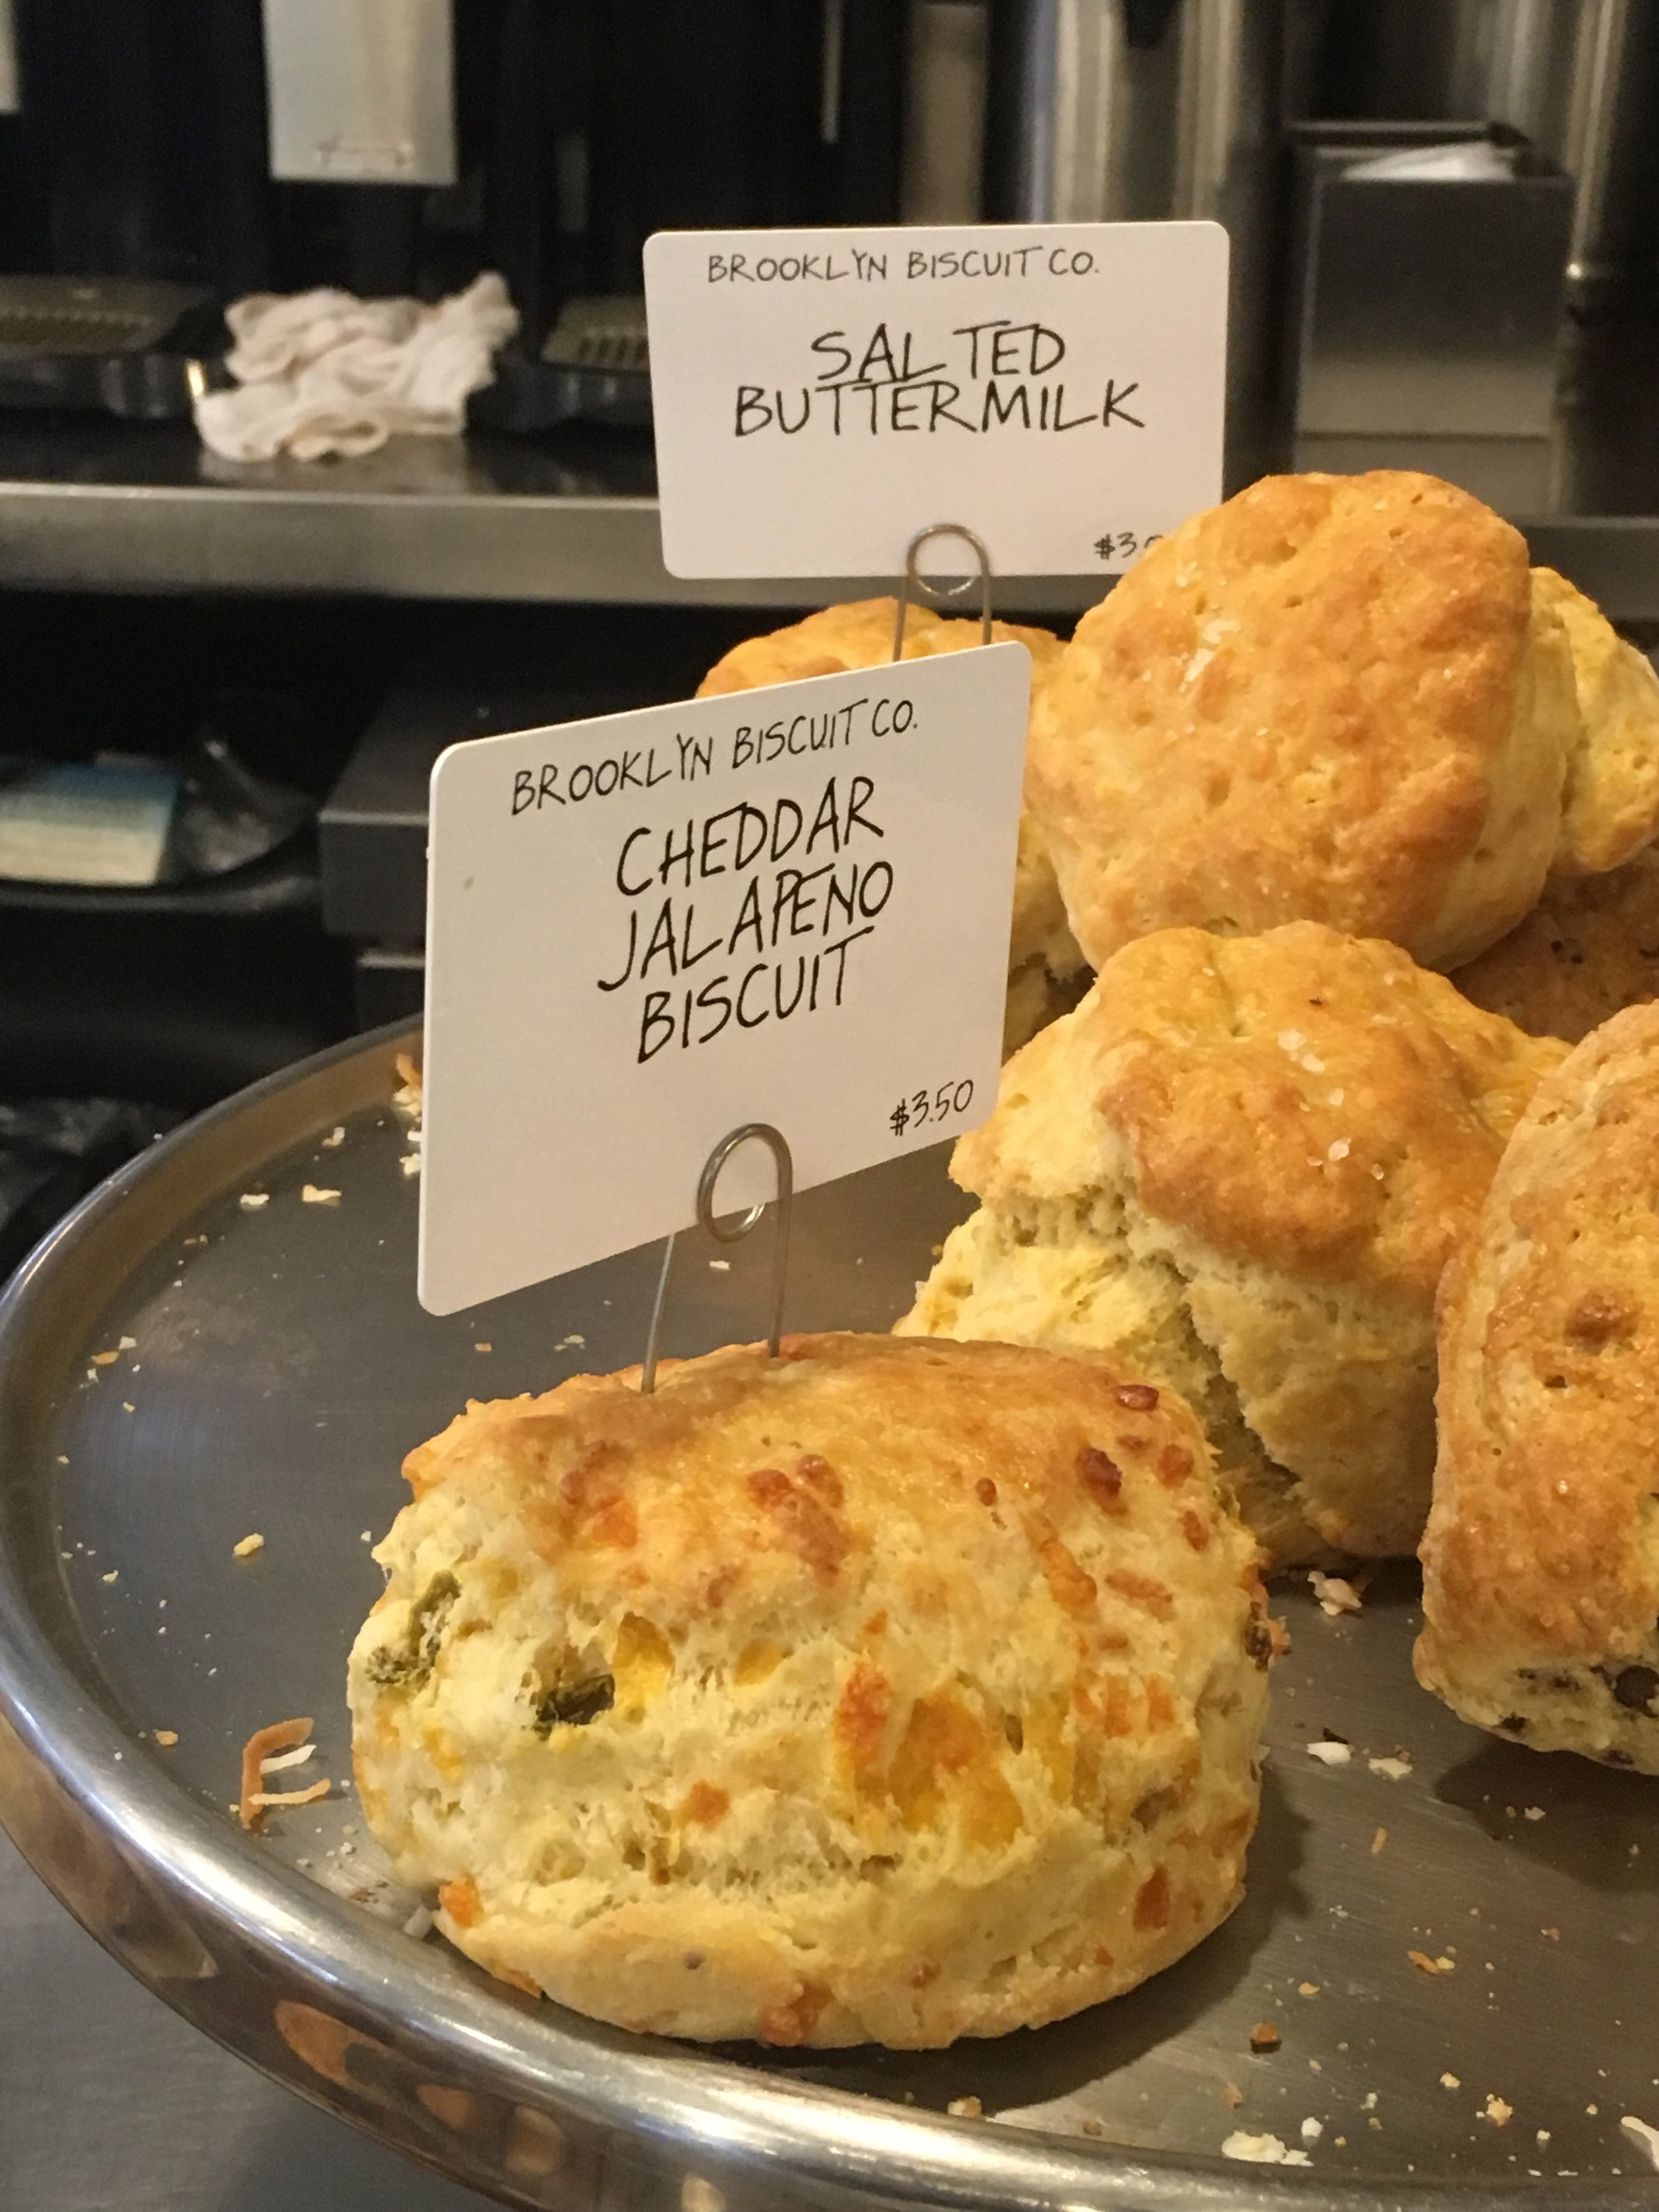 Biscuits are the Bomb!